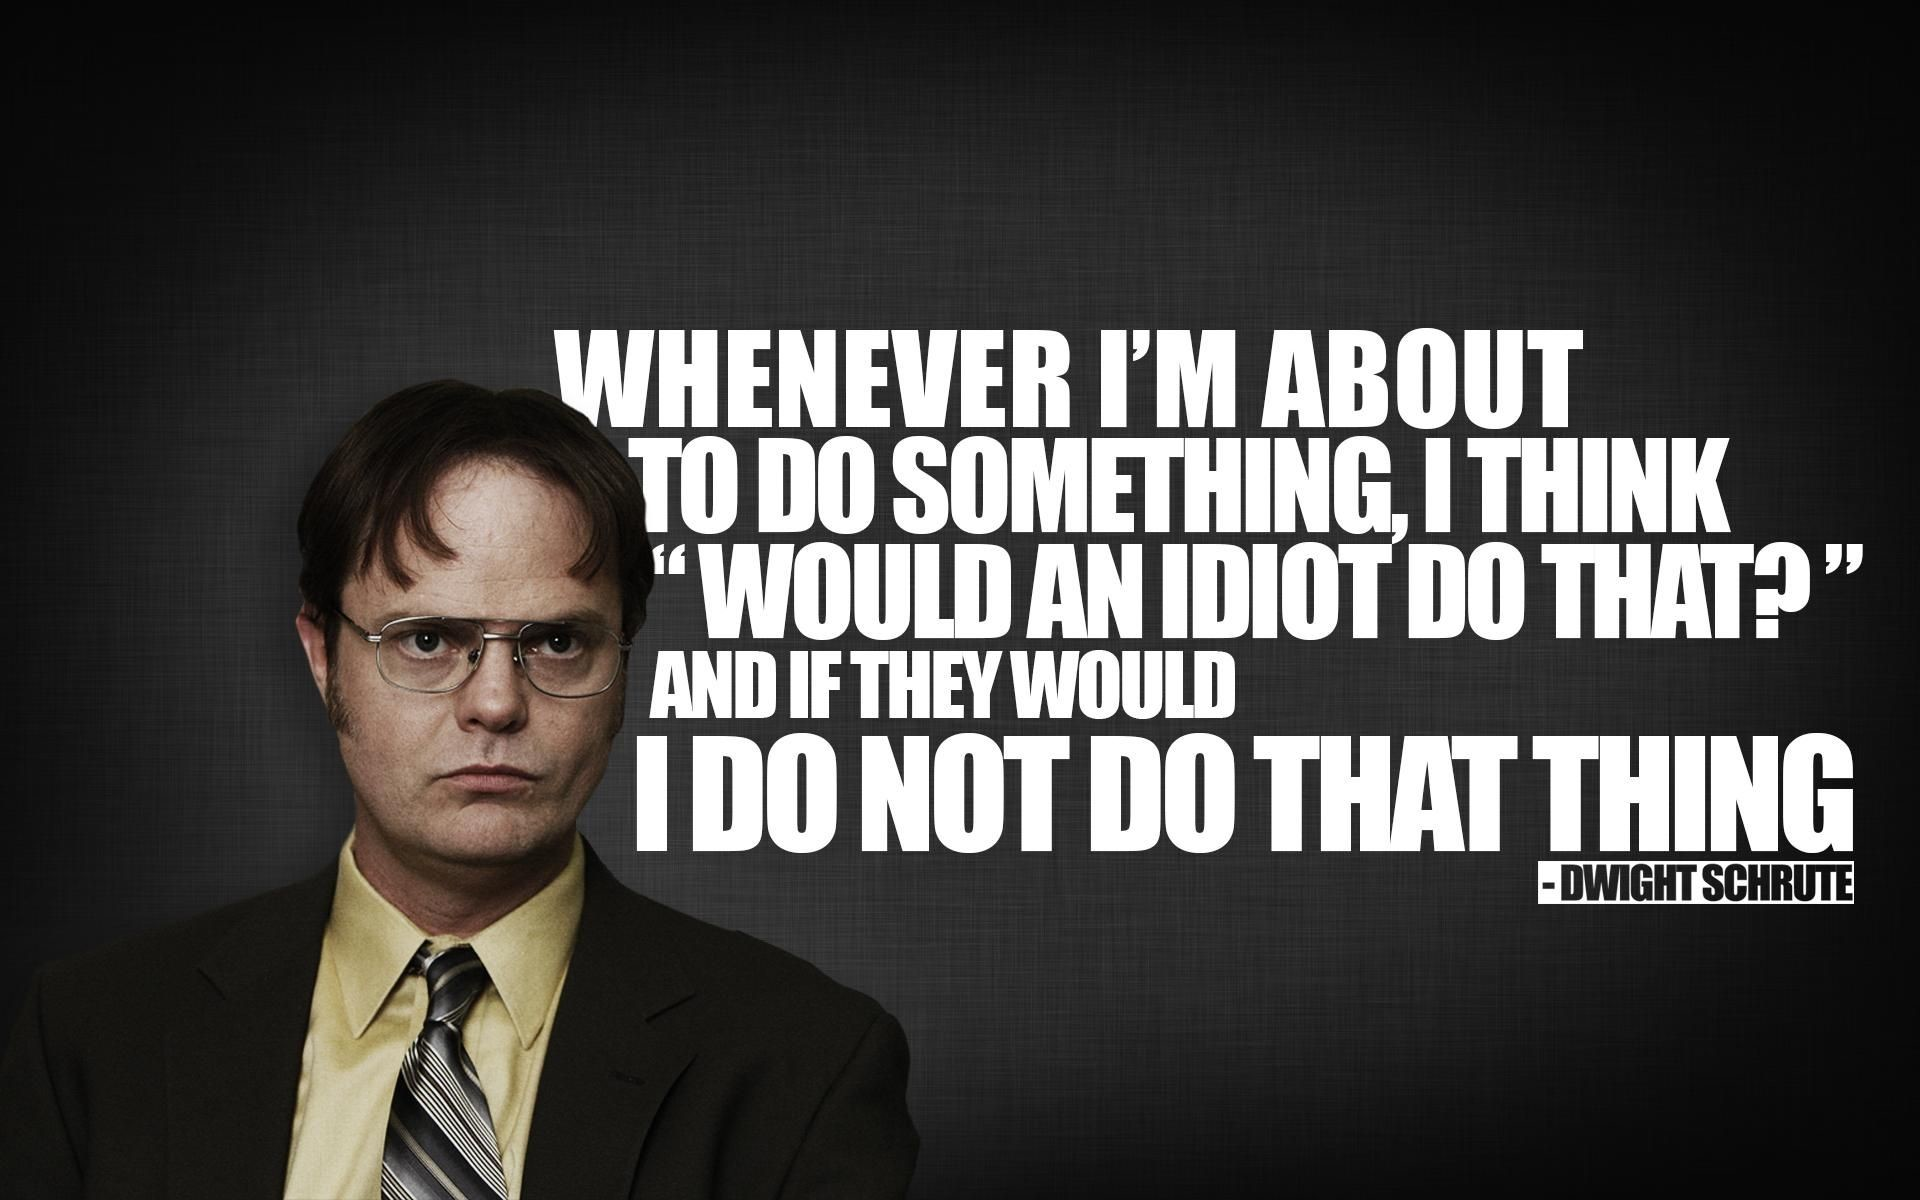 The Office Quotes Wallpaper 66 Images